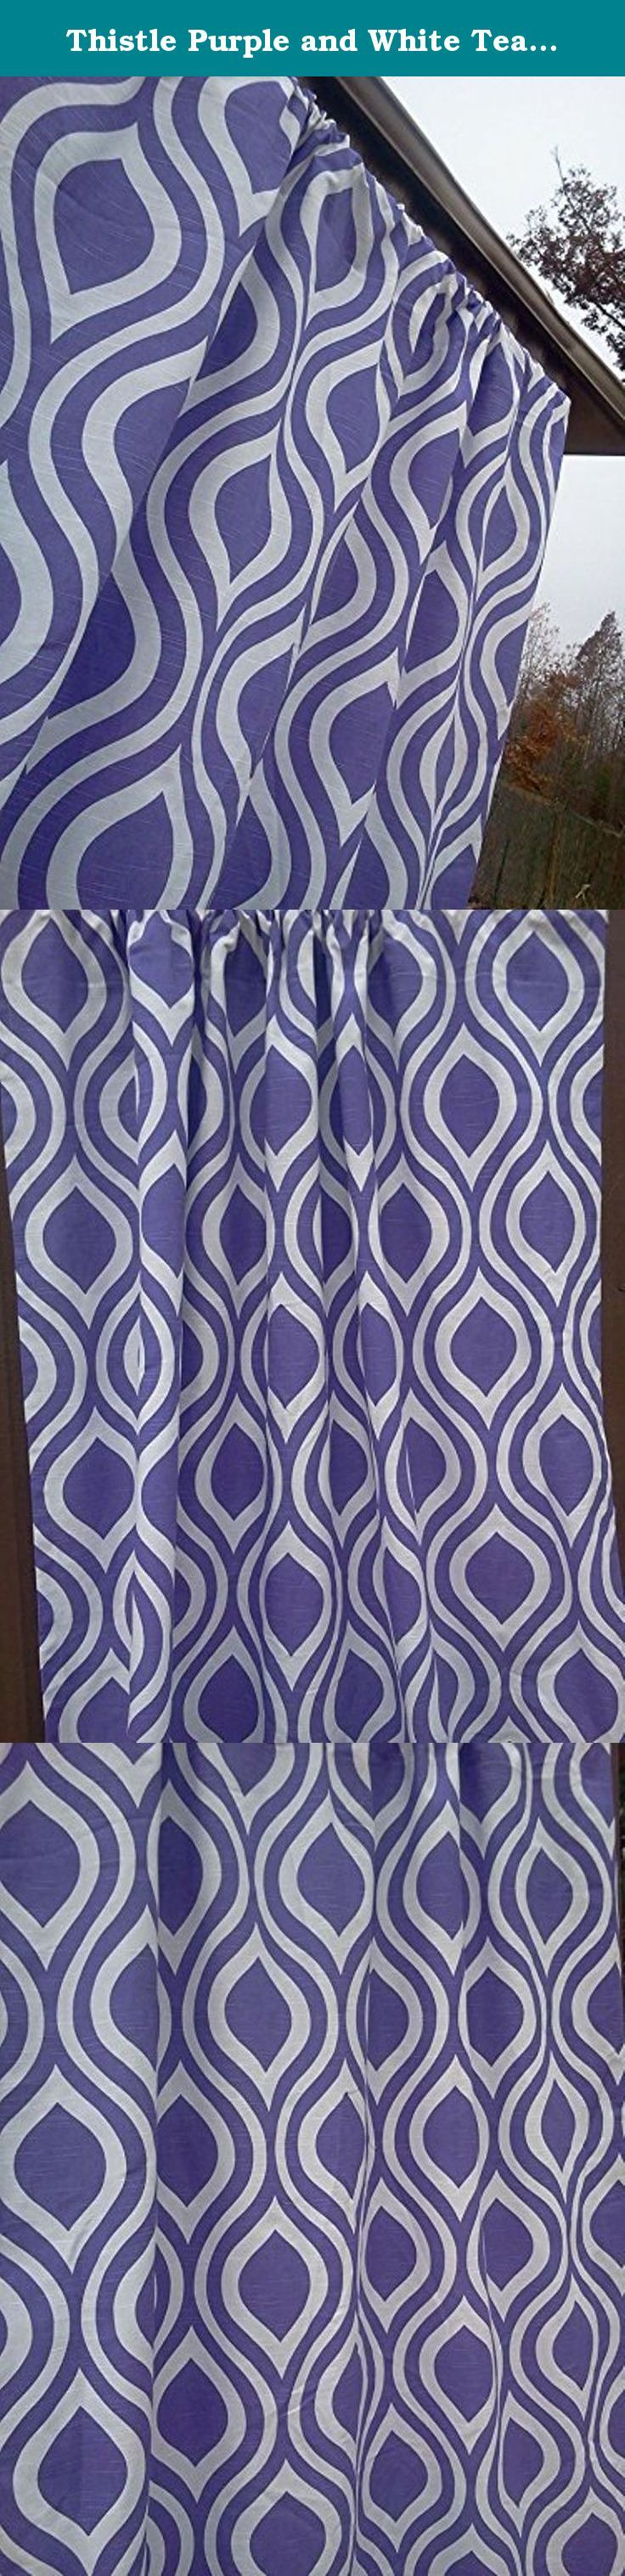 "Thistle Purple and White Teardrop Full Length Curtains, Purple Teardrop Valance Curtains, 100% quality cotton Slub Premier Prints drapery fabric These curtains are 84"" Long by 52"" Wide. Thistle Purple and White Full Length Teardrop Curtains, 52"" Wide by 84"" Long; 100% quality cotton Slub, Premier Prints home décor weight drapery fabric. Please allow 7-14 days for delivery, as the curtains are handmade after your purchase to keep inventory costs low. Keeping inventory costs low helps keep…"